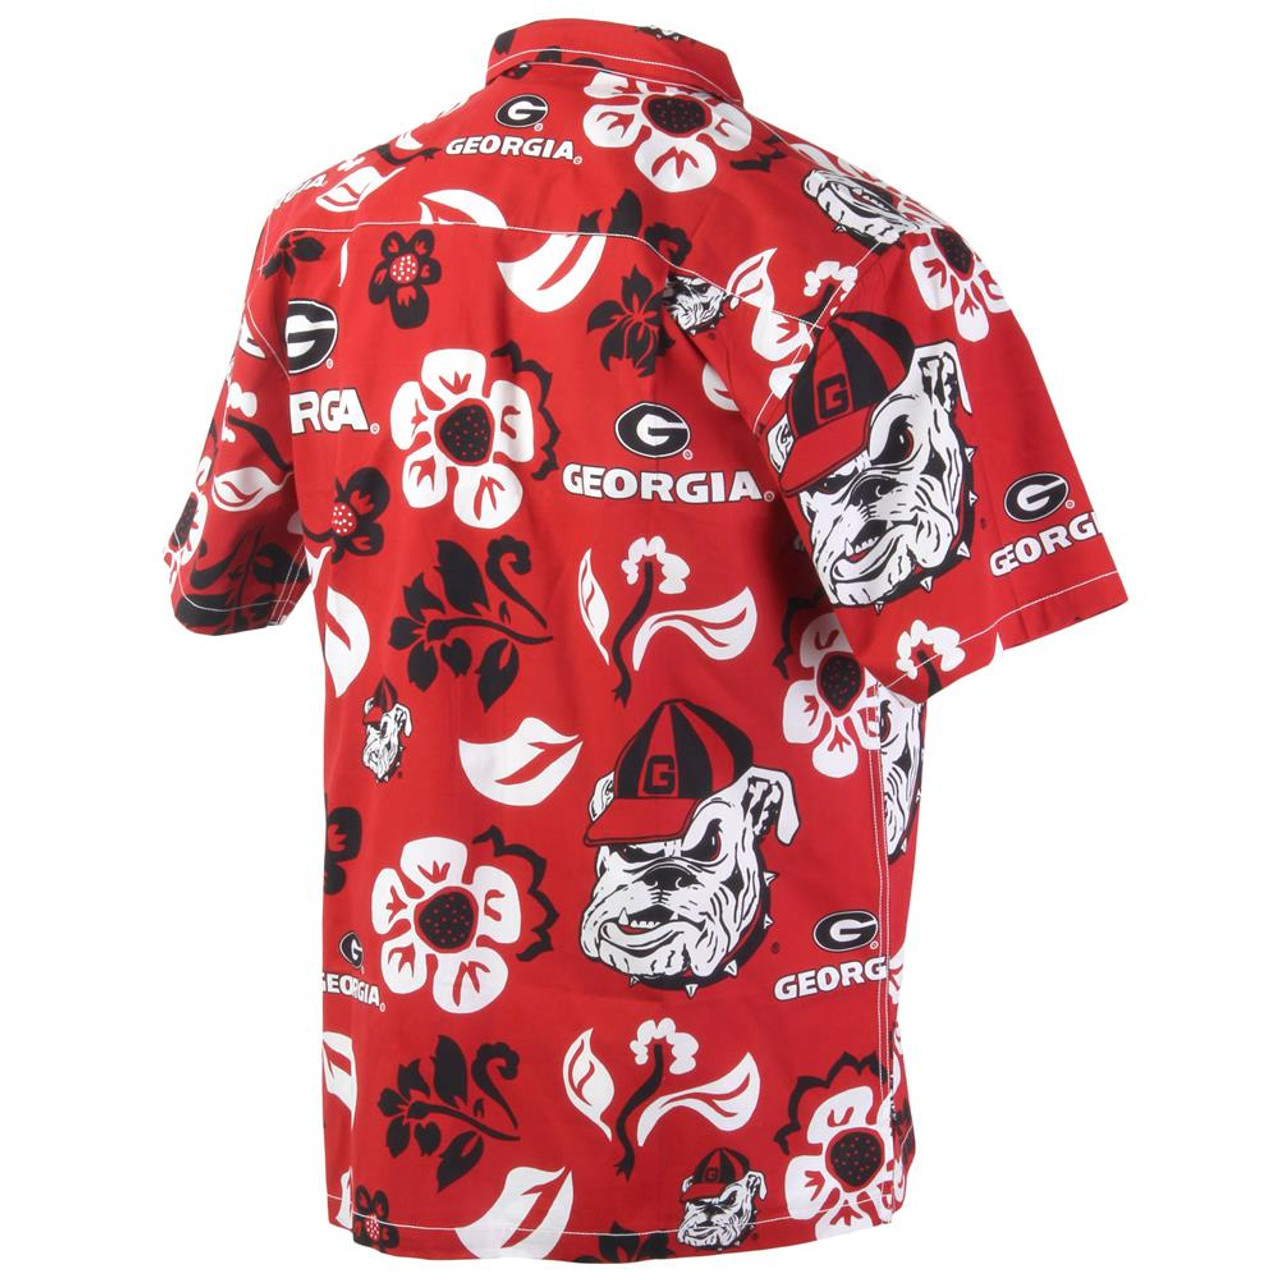 Men's Georgia Bulldogs UGA Floral Shirt Button Up Beach Shirt